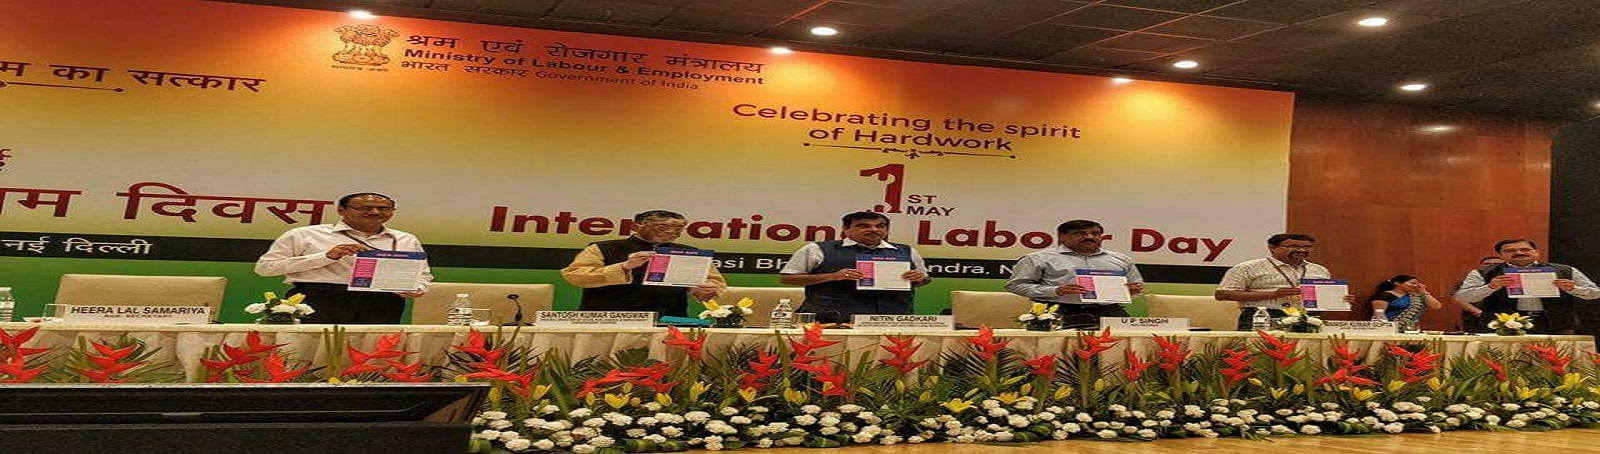 "On the eve of the 'International Labour Day' celebrations held at the Pravasi Bhartiya Kendra on 01st May, 2018, Shri Santosh Kumar Gangwar, Hon'ble Minister of State for Labour & Employment (I/c) releasing the VVGNLI publication ""Child Hope"" focusing on"